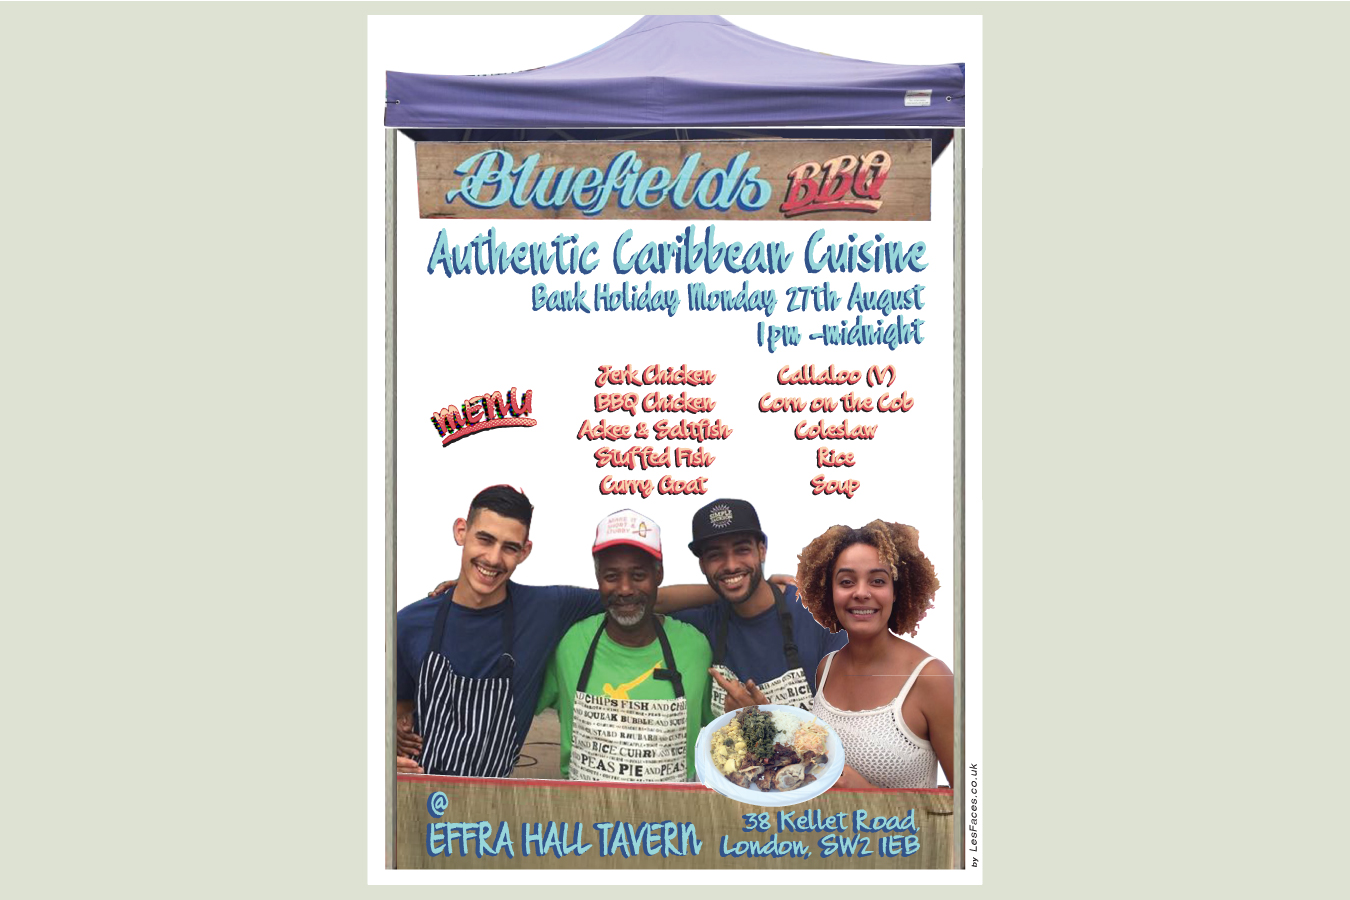 Flyer for Bluefields BBQ